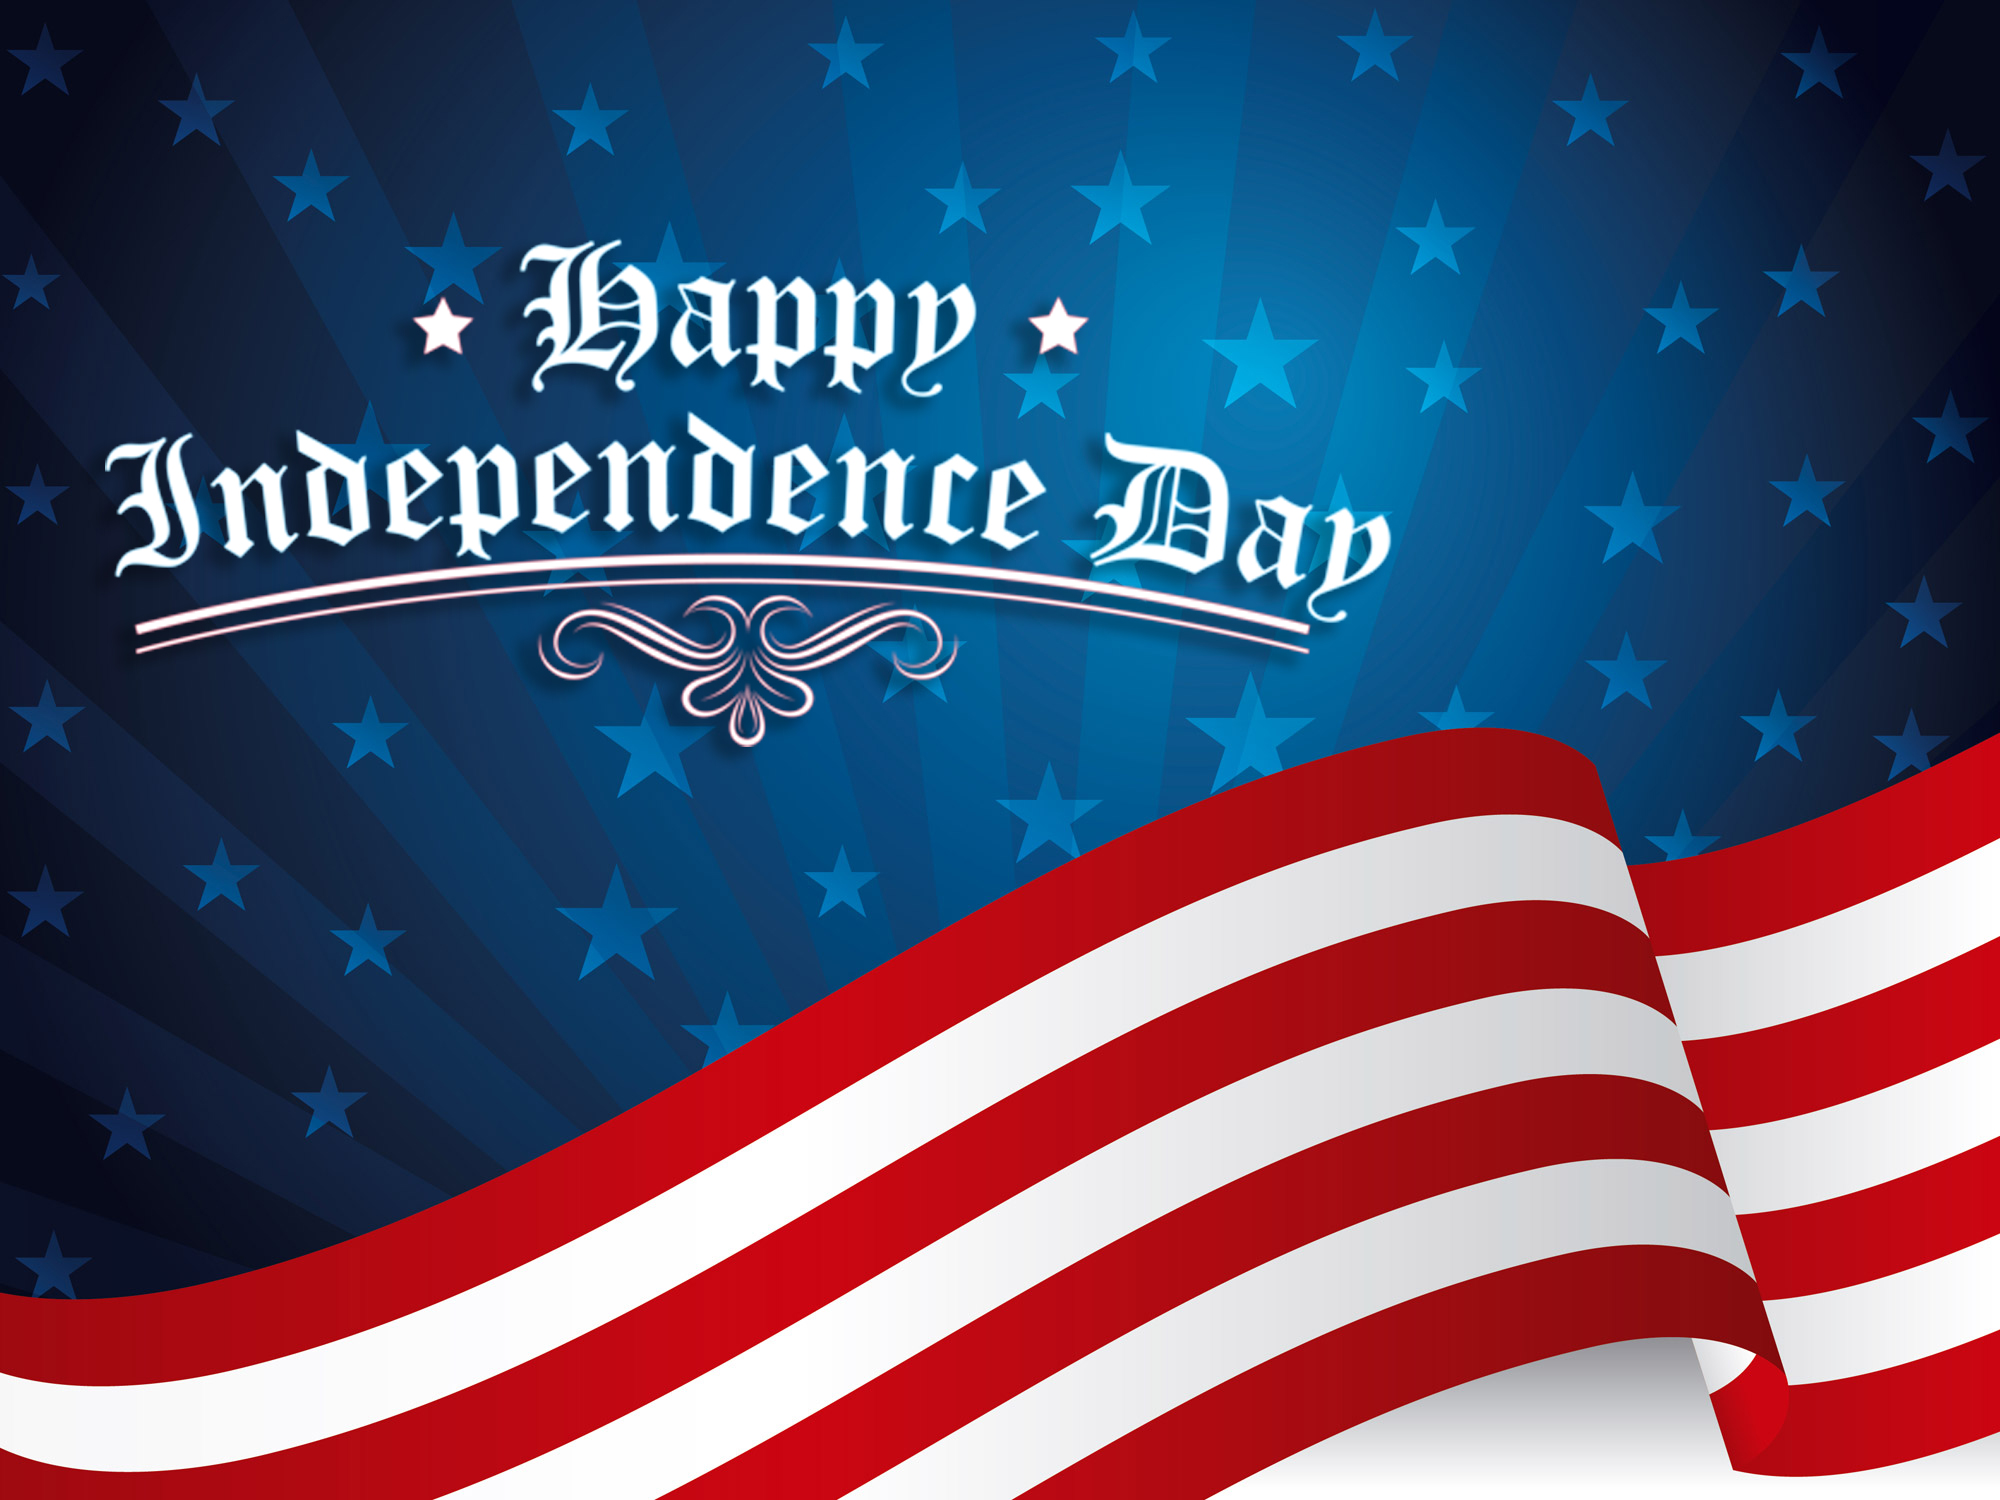 desktop free download 4th july american independence day wises